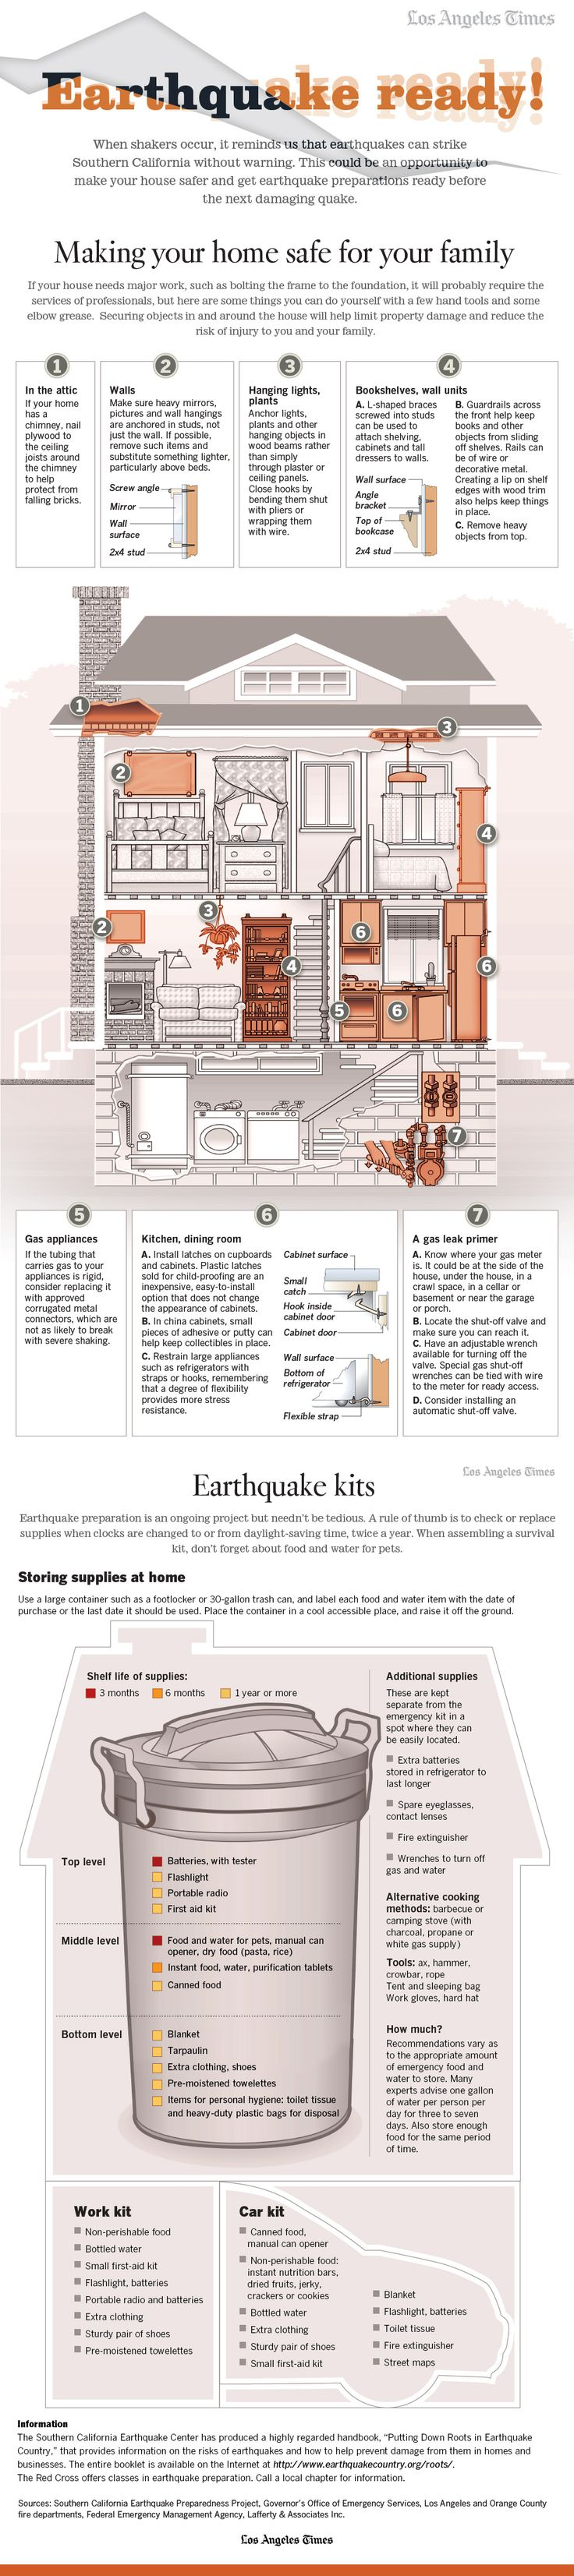 Is your home earthquake-ready? How to prepare for the big one - latimes.com